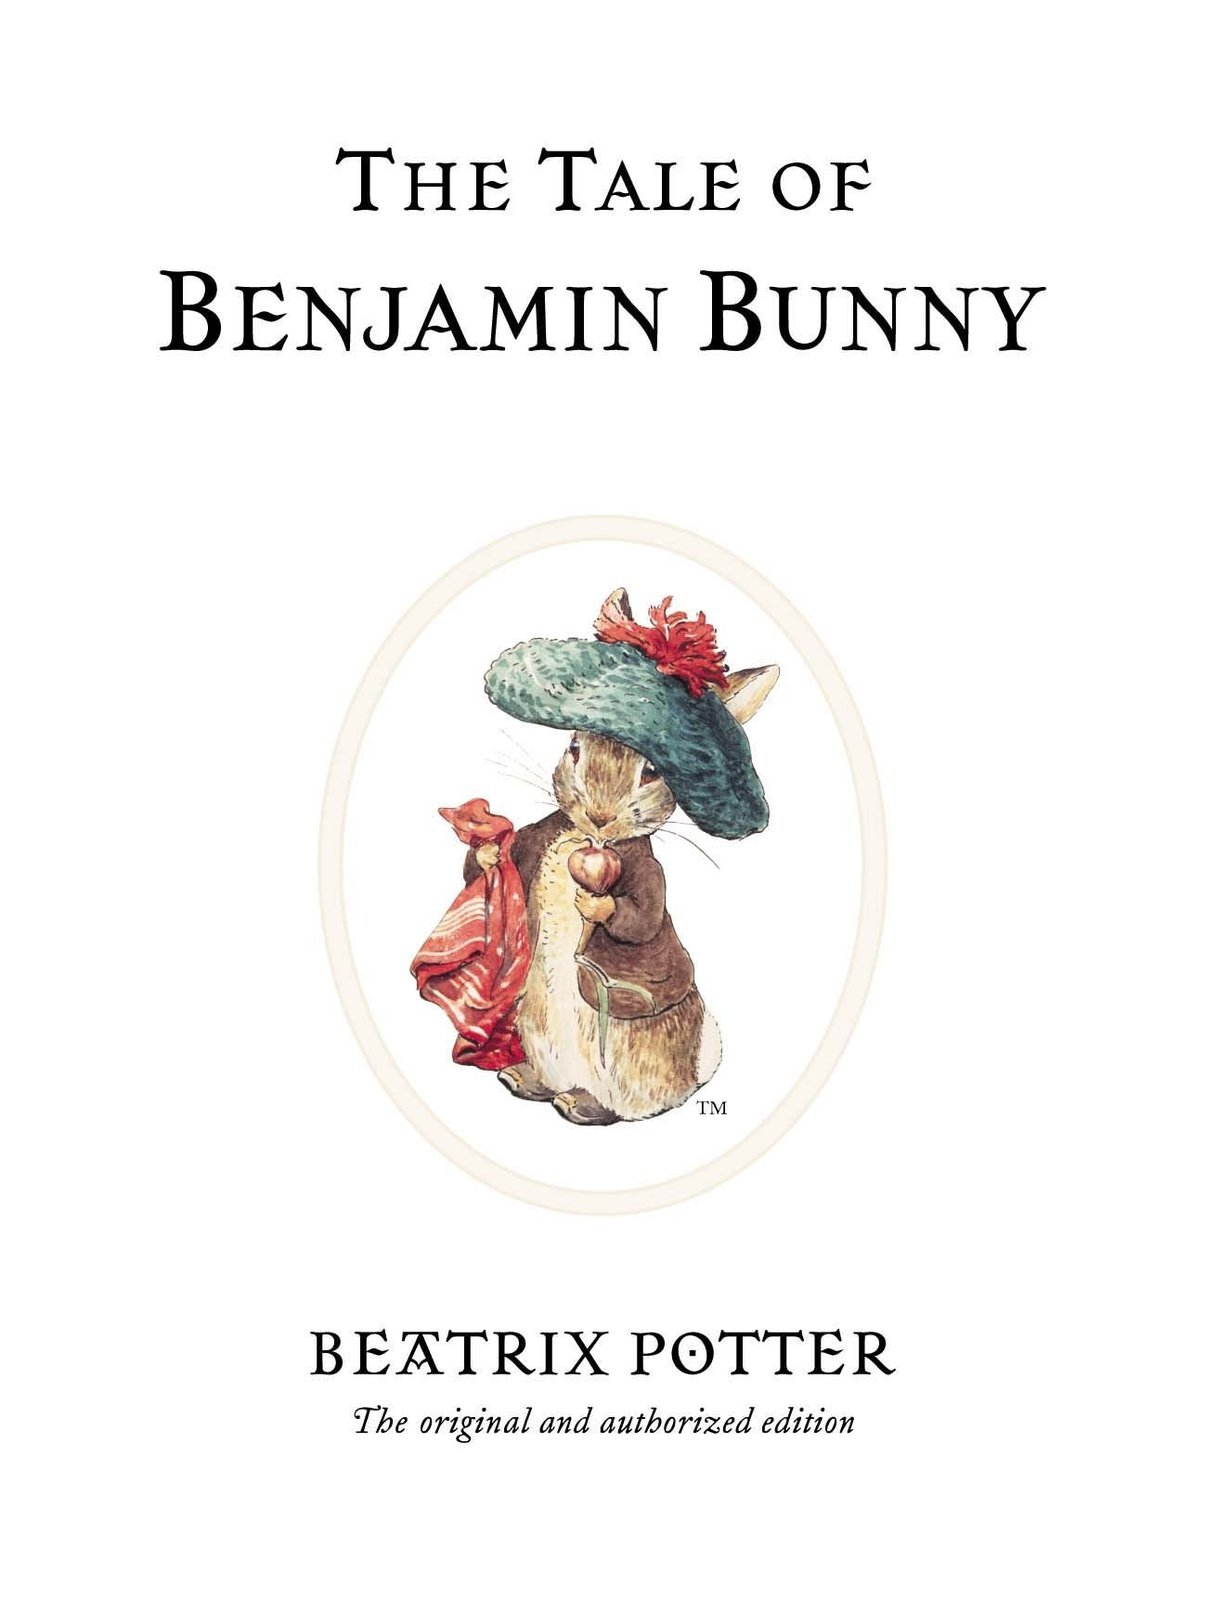 The Tale of Benjamin Bunny by Beatrix Potter image